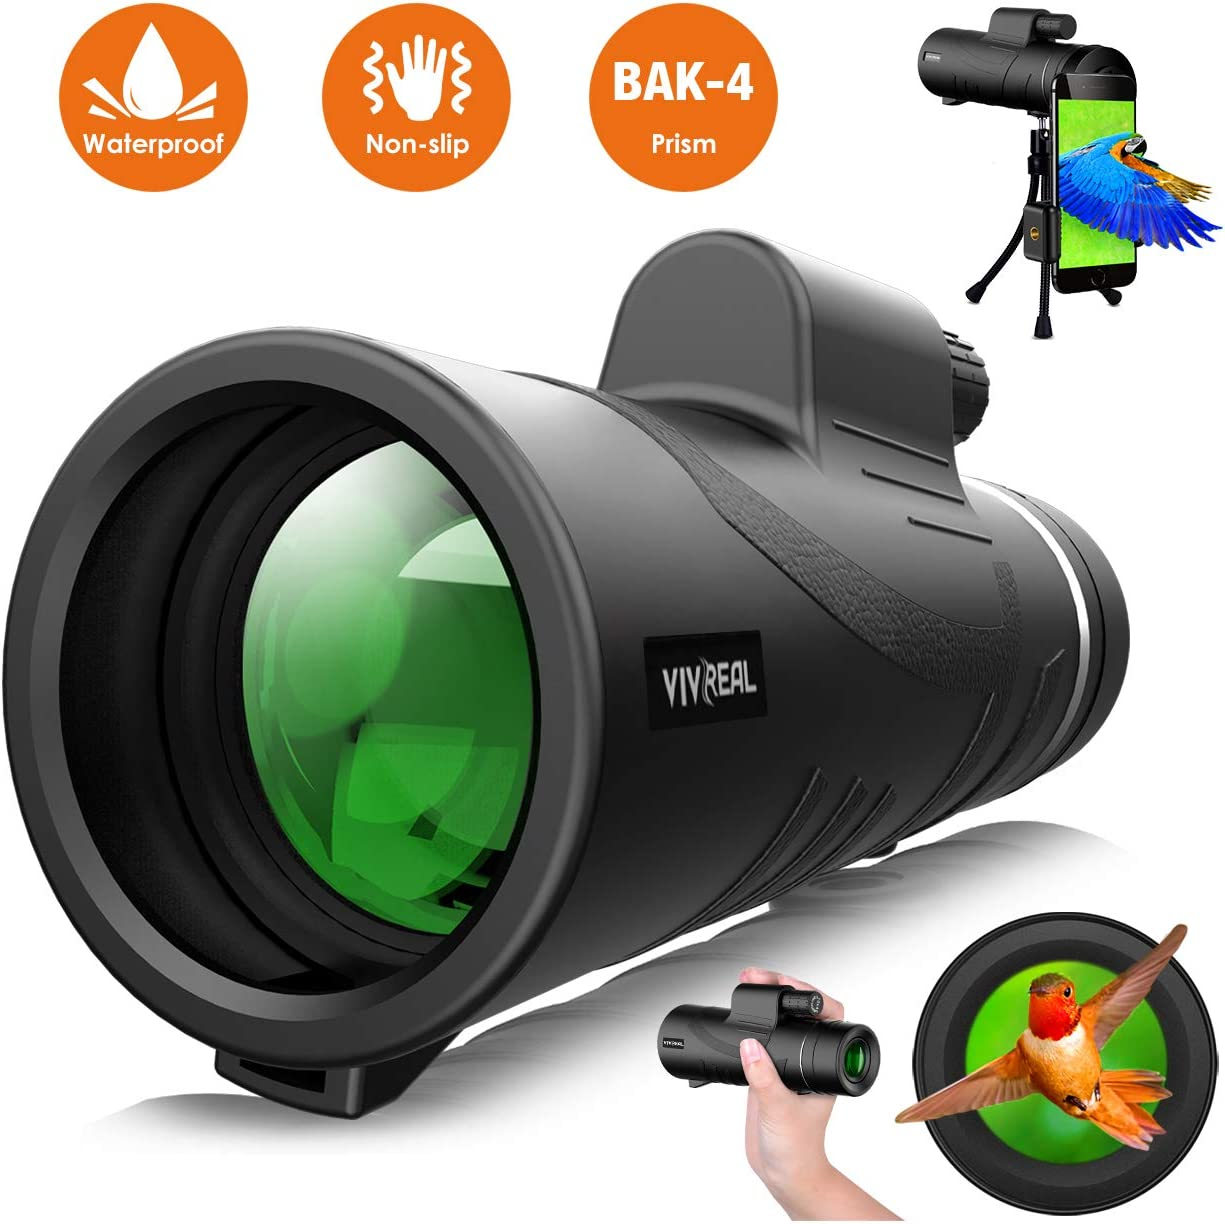 Monocular Telescope – 12X50 High Power HD Monocular for Bird Watching with Smartphone Holder Tripod IPX7 Waterproof Monocular Made by Hyper FMC BAK4 Prism Eco-Friendly Materials